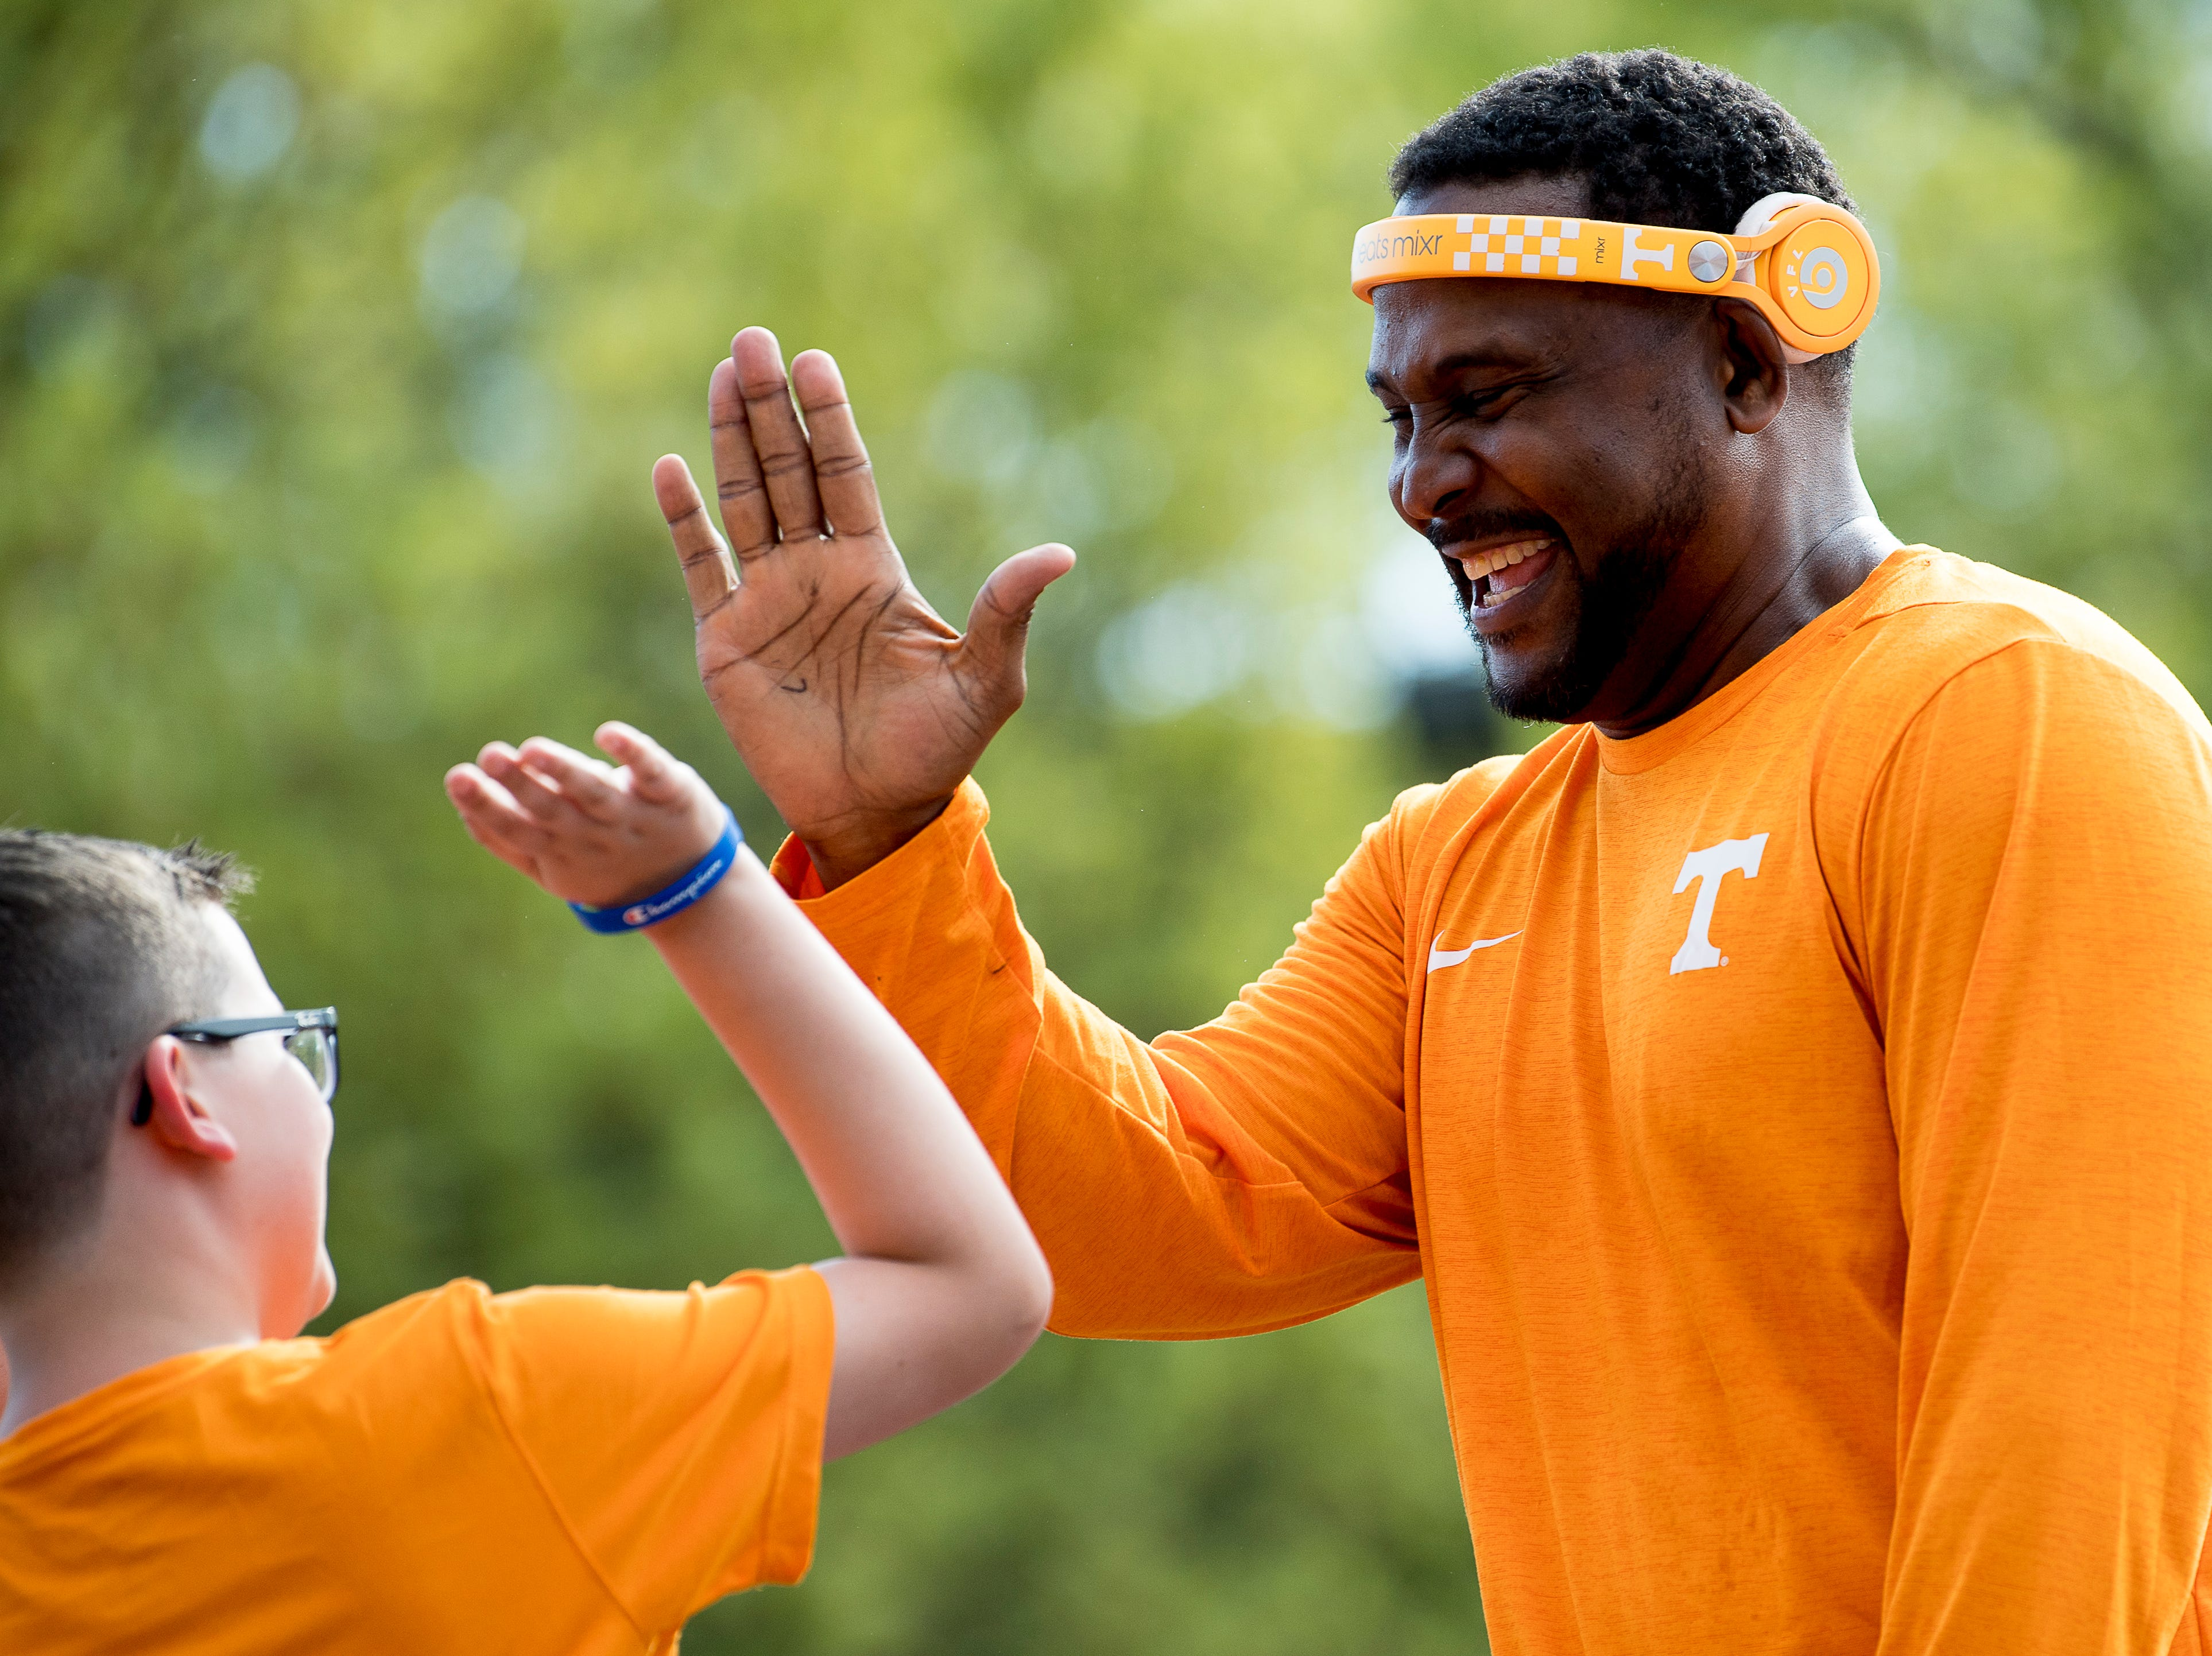 Former Tennessee quarterback DJ Sterl the Pearl high fives a young fan at the Tennessee Spring Game at Neyland Stadium in Knoxville, Tennessee on Saturday, April 13, 2019.